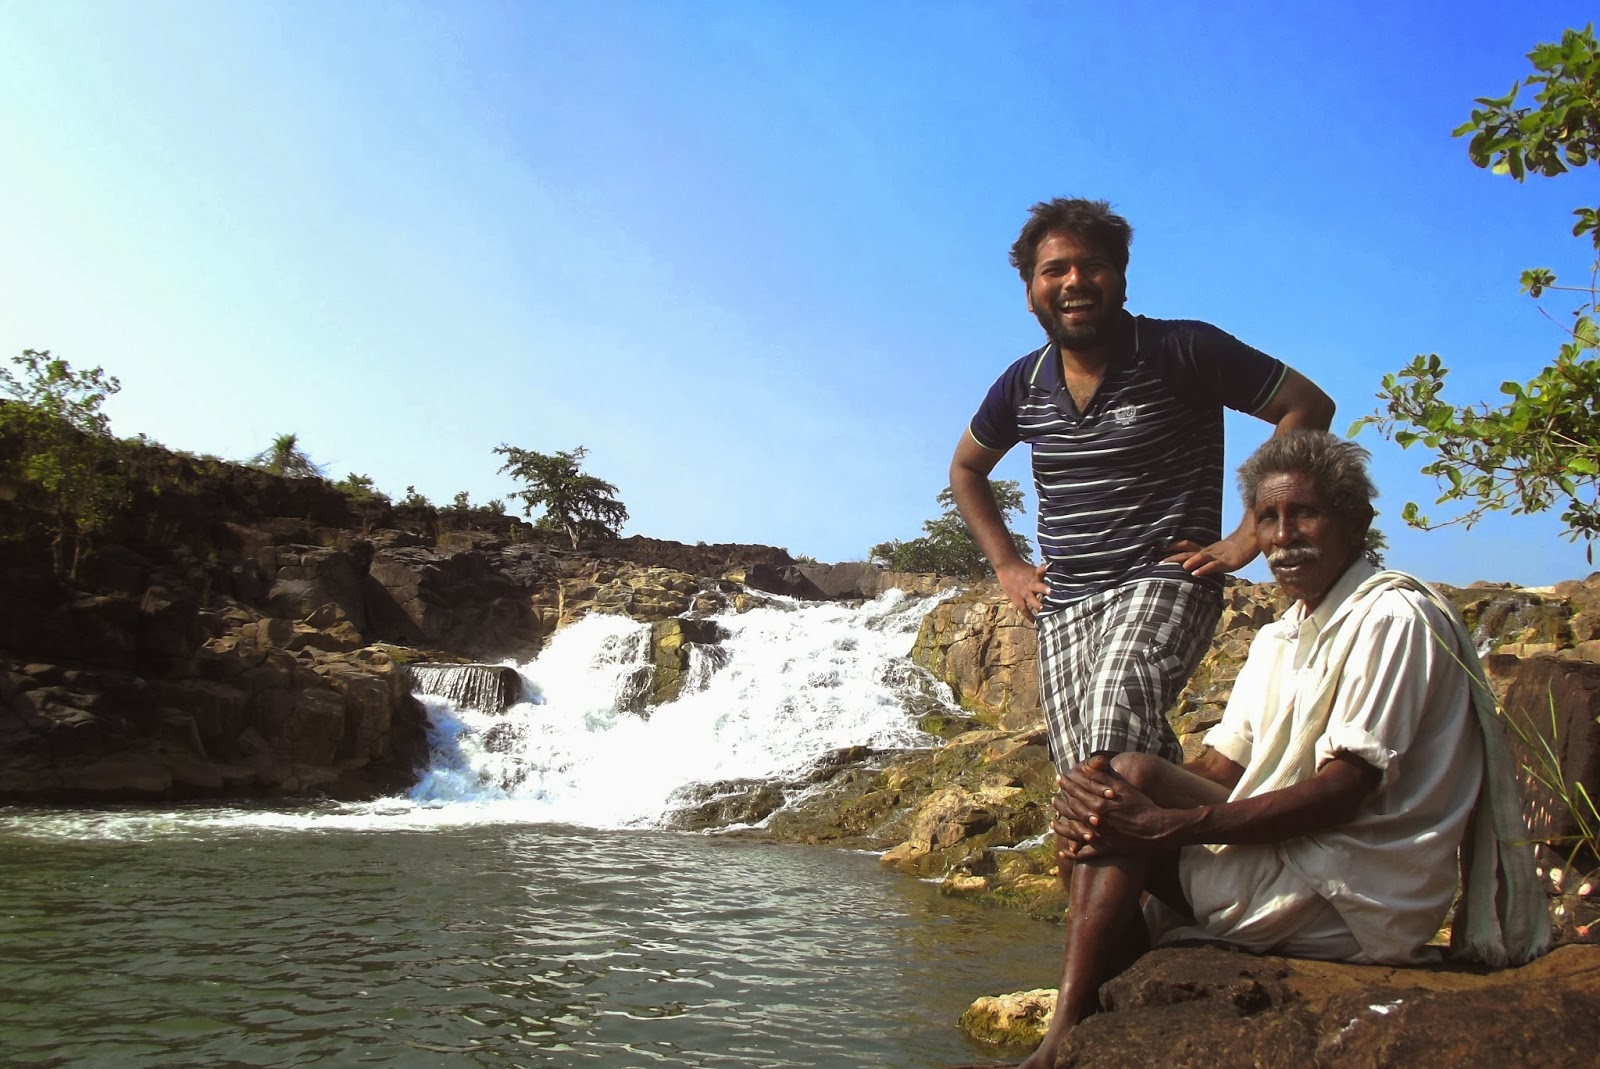 Arif with Rajanna @ Kanakai Waterfalls